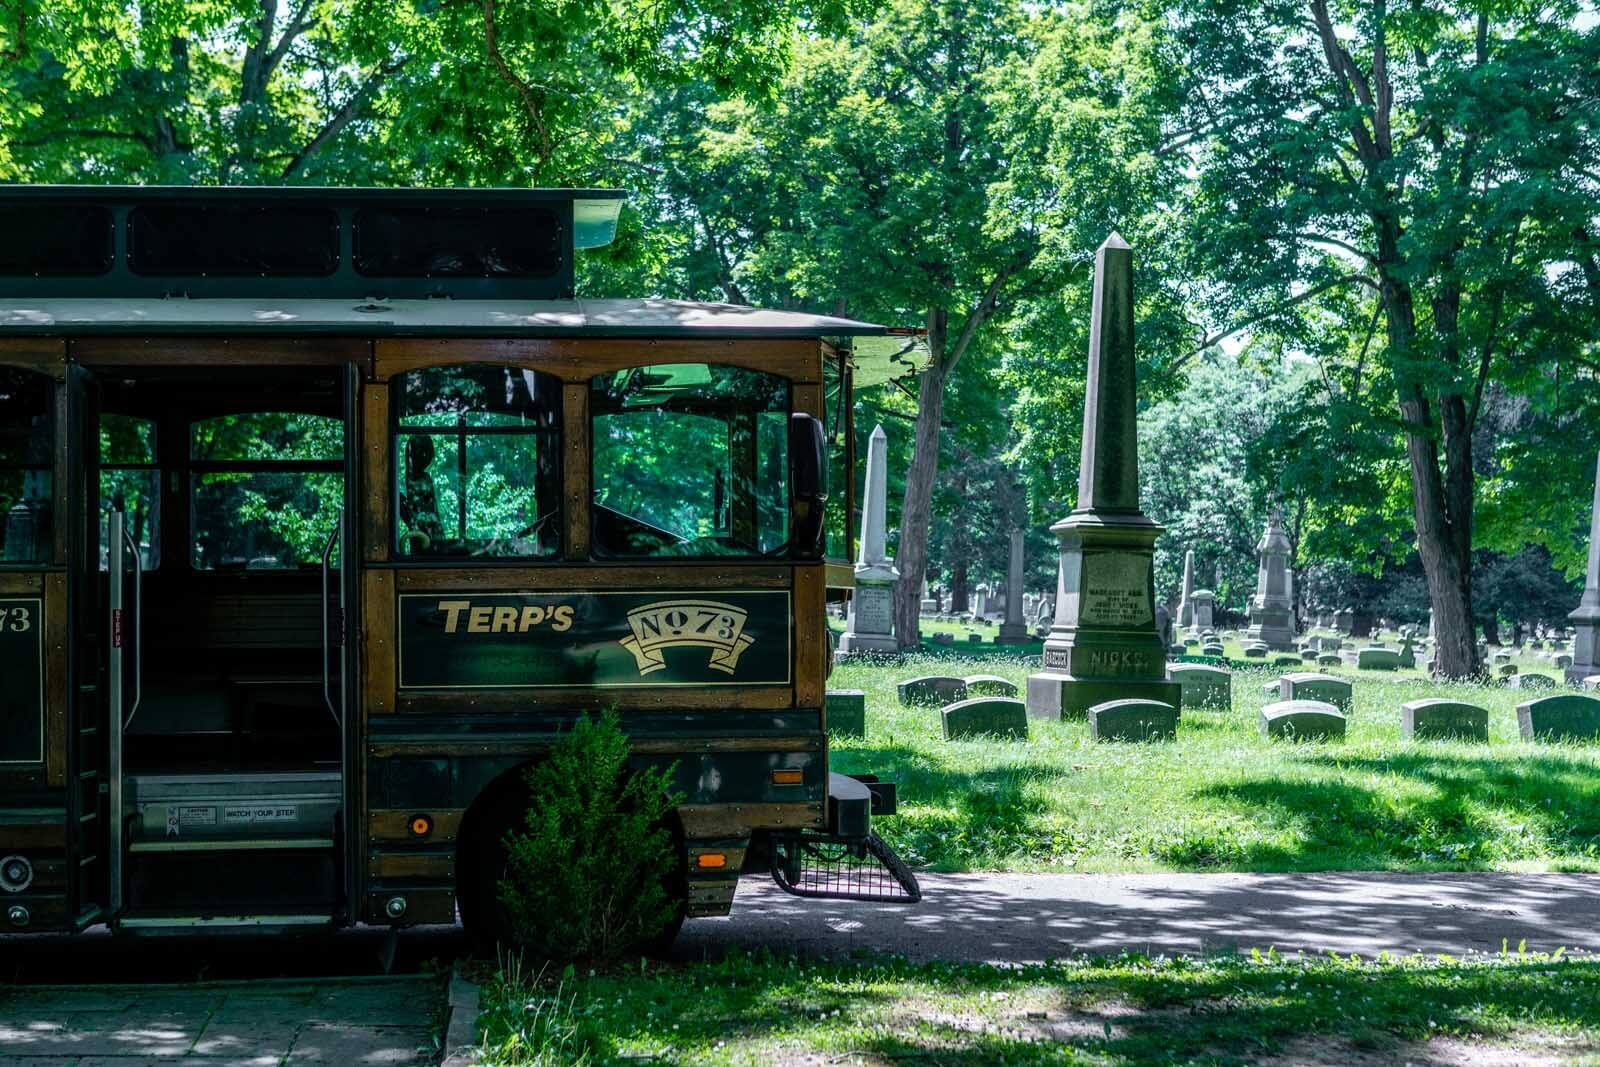 The Mark Twain Trolley in Woodlawn Cemetery in Elmira New York